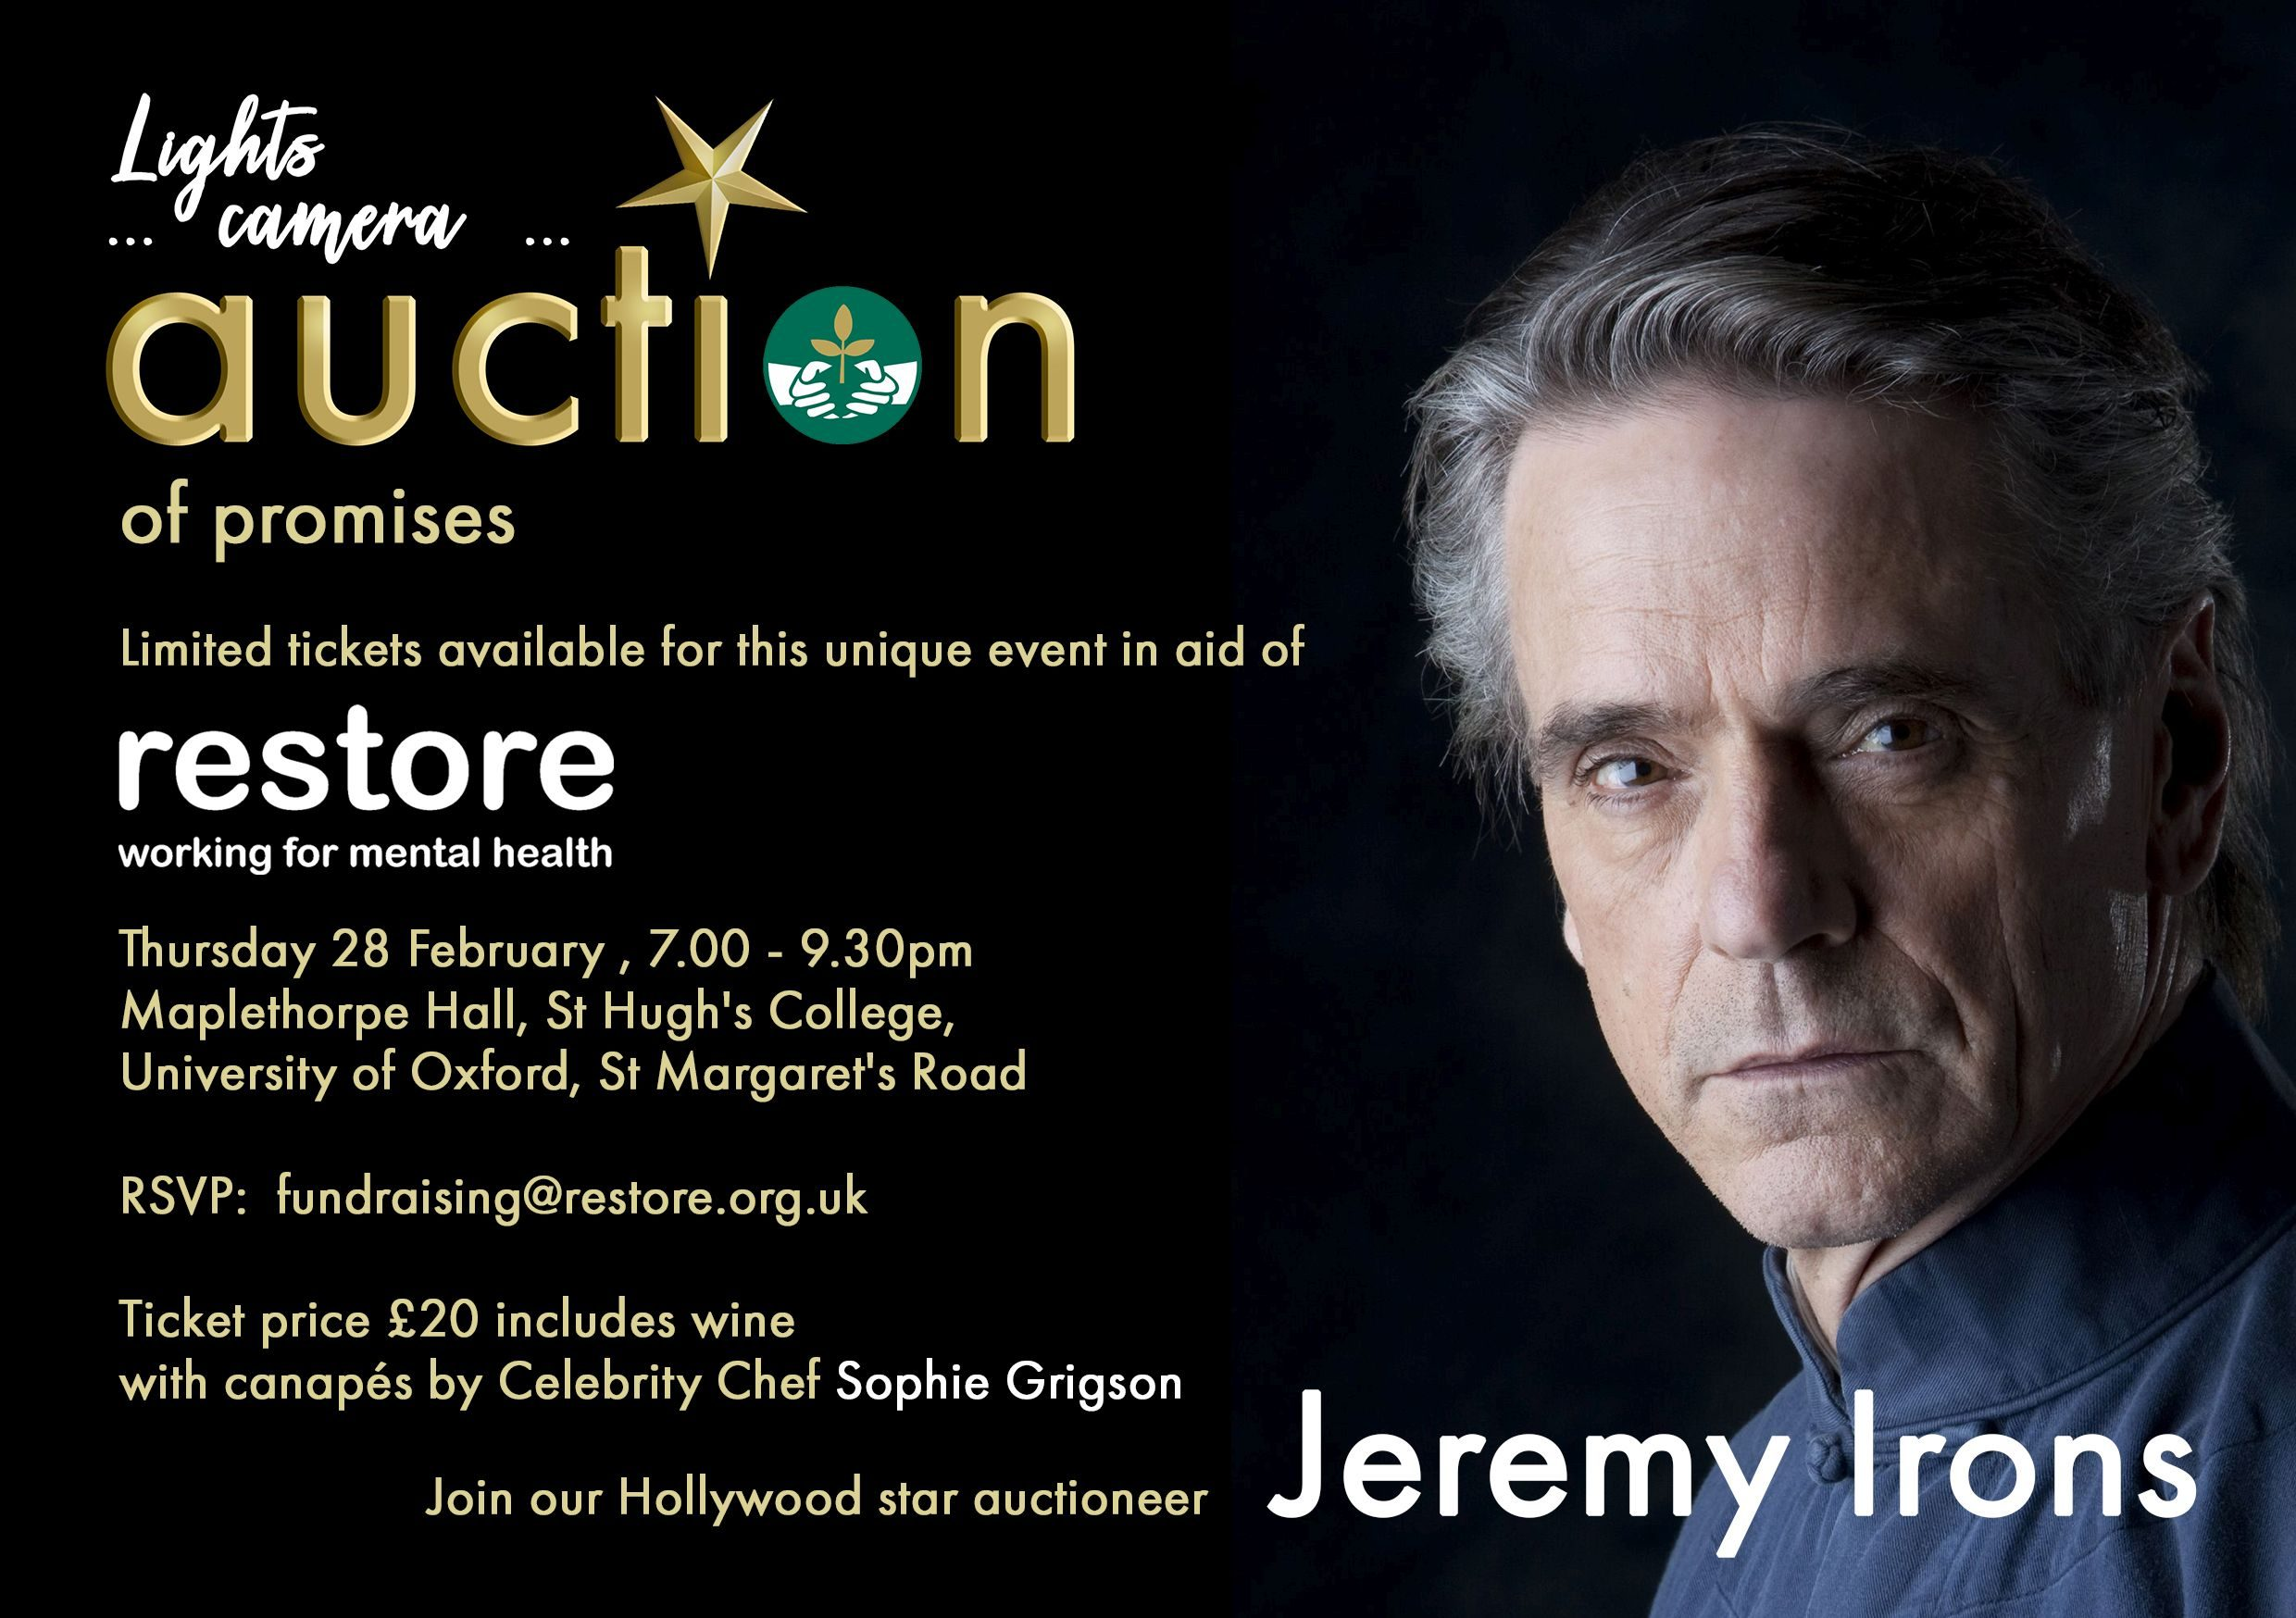 Lights, camera, Auction of Promises…with Jeremy Irons